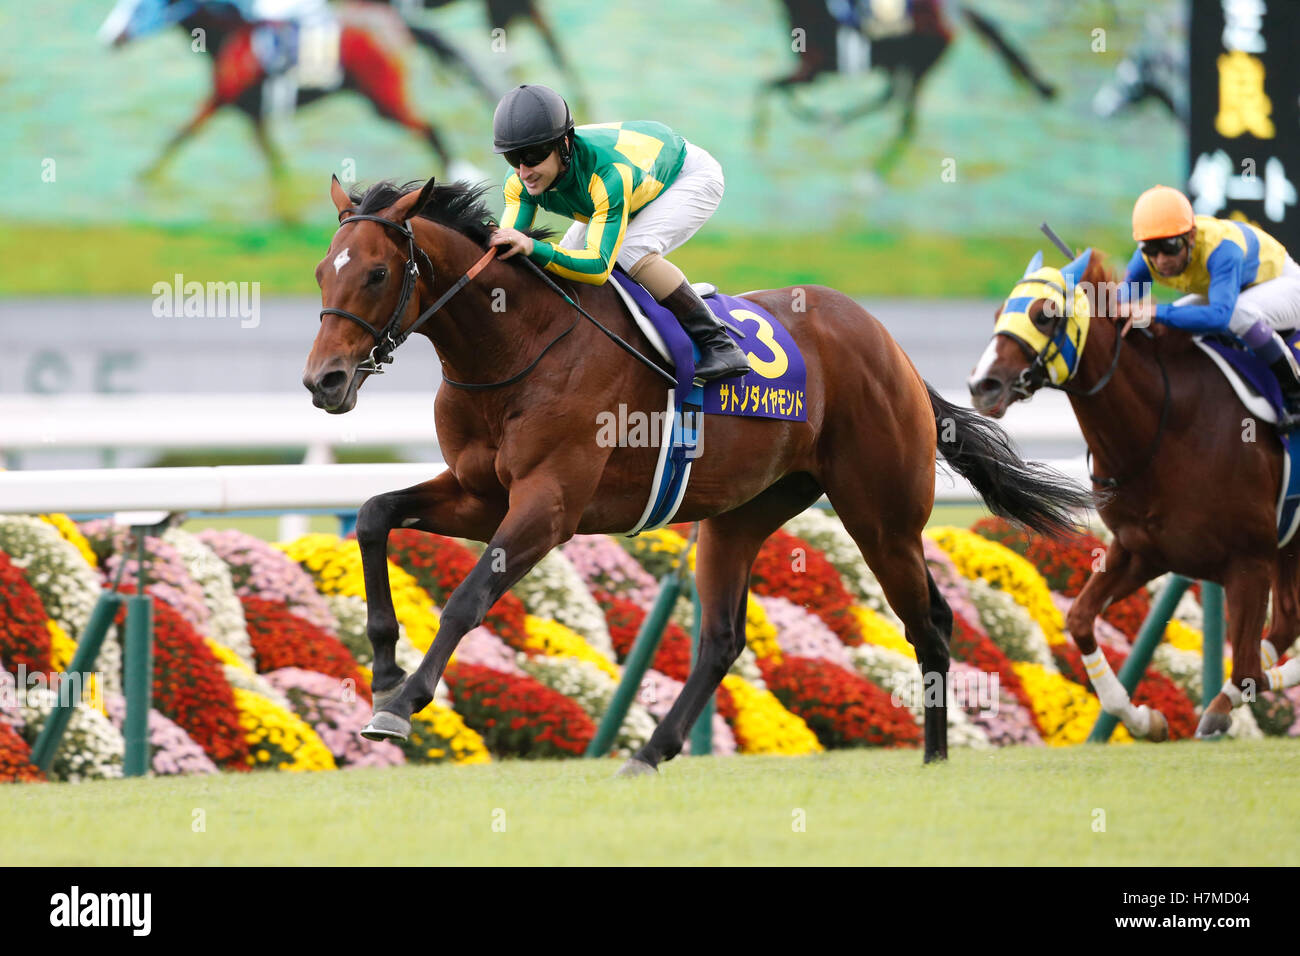 Kyoto, Japan. 23rd Oct, 2016. (L-R) Satono Diamond ( Christophe Lemaire), Air Spinel (Yutaka Take) Horse Racing - Stock Image